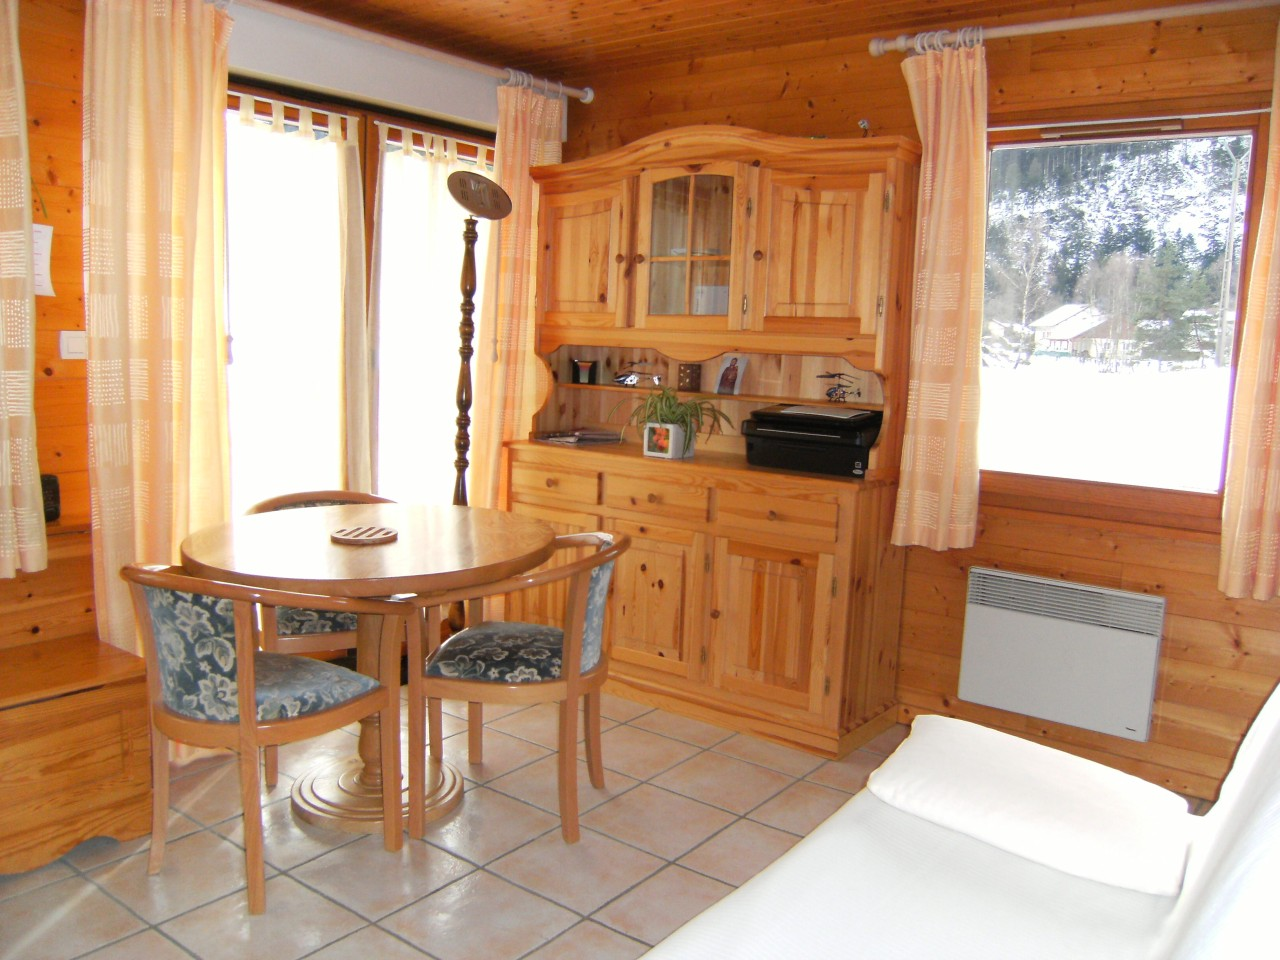 Agence immobili re g rardmer annonce chalets n 2266 for Agence immobiliere gerardmer